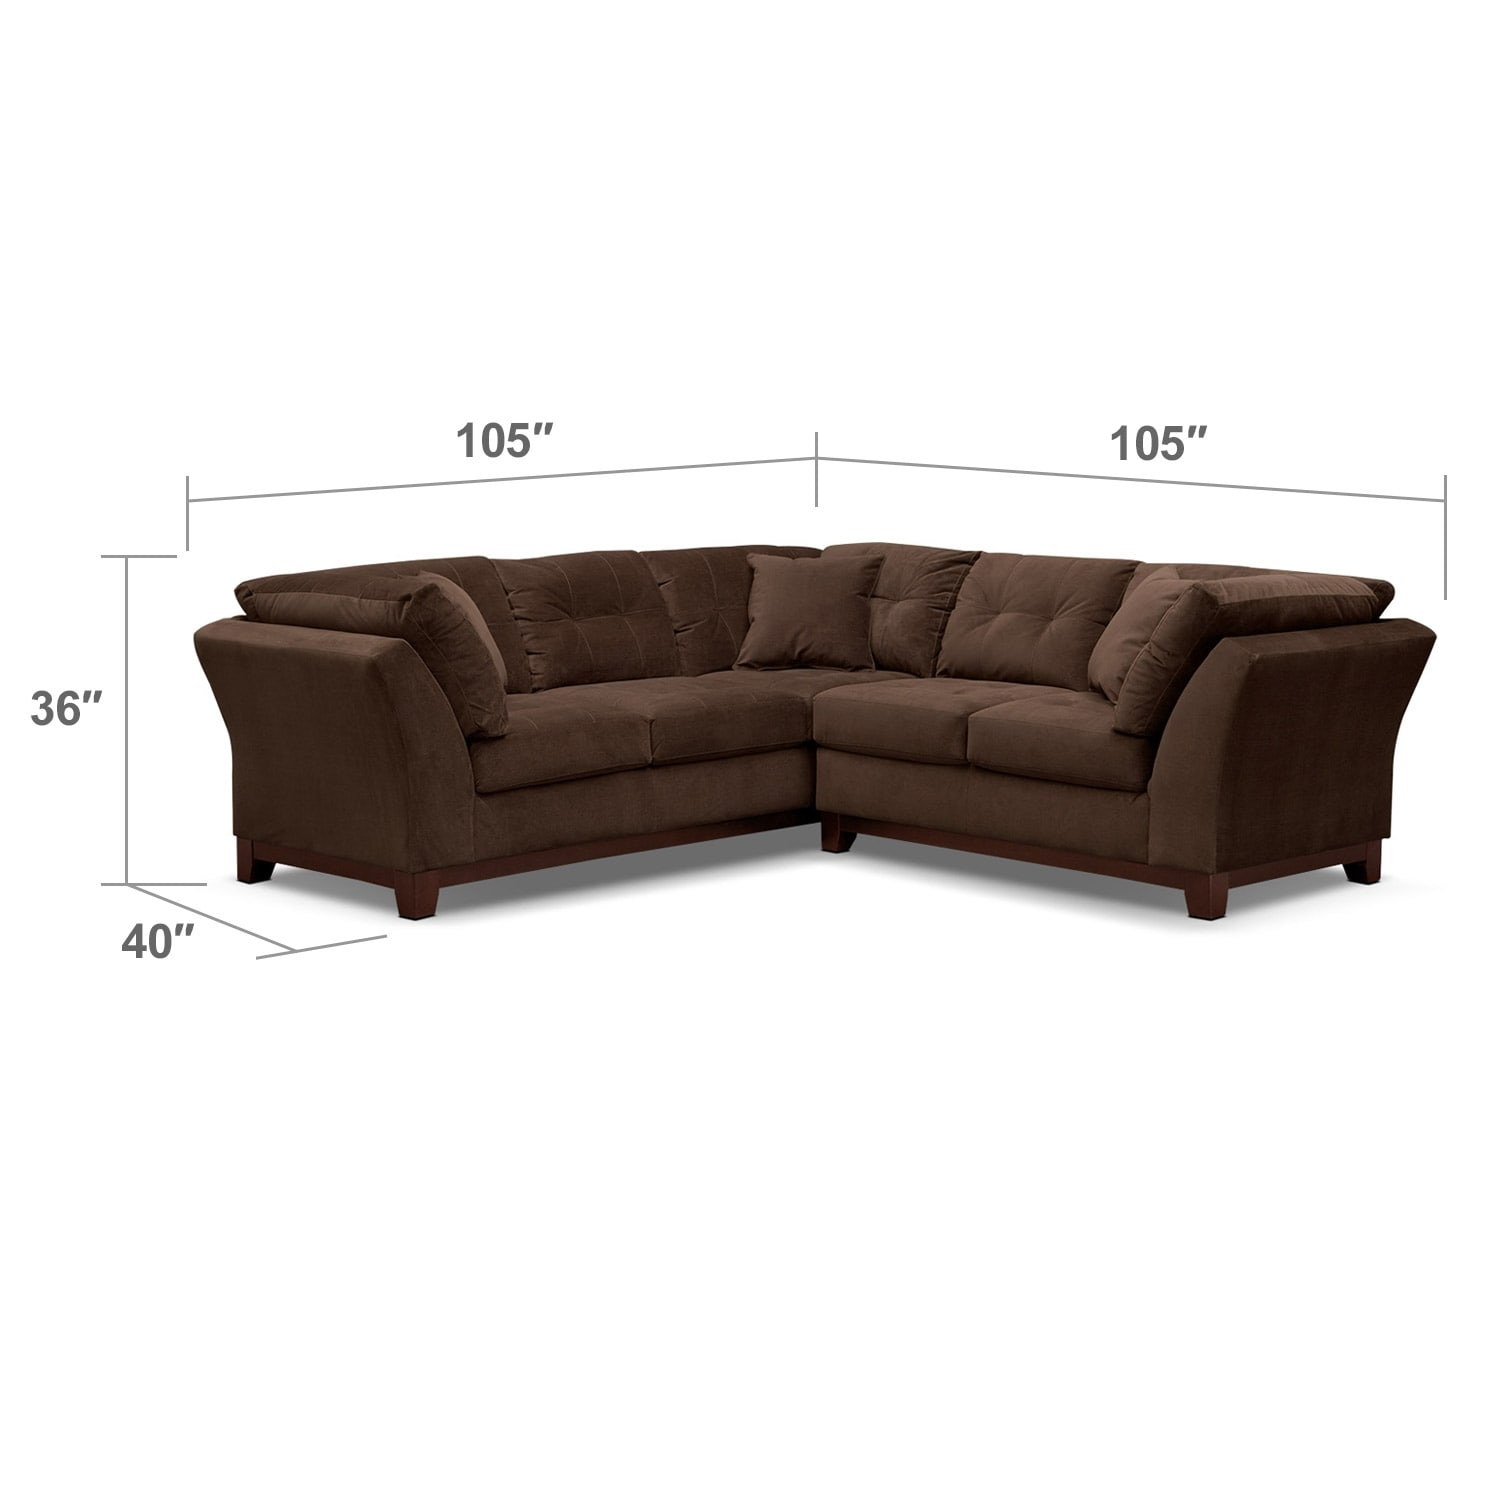 """Living Room Furniture - Solace 2-Piece Left-Facing 105"""" Sofa Sectional - Chocolate"""